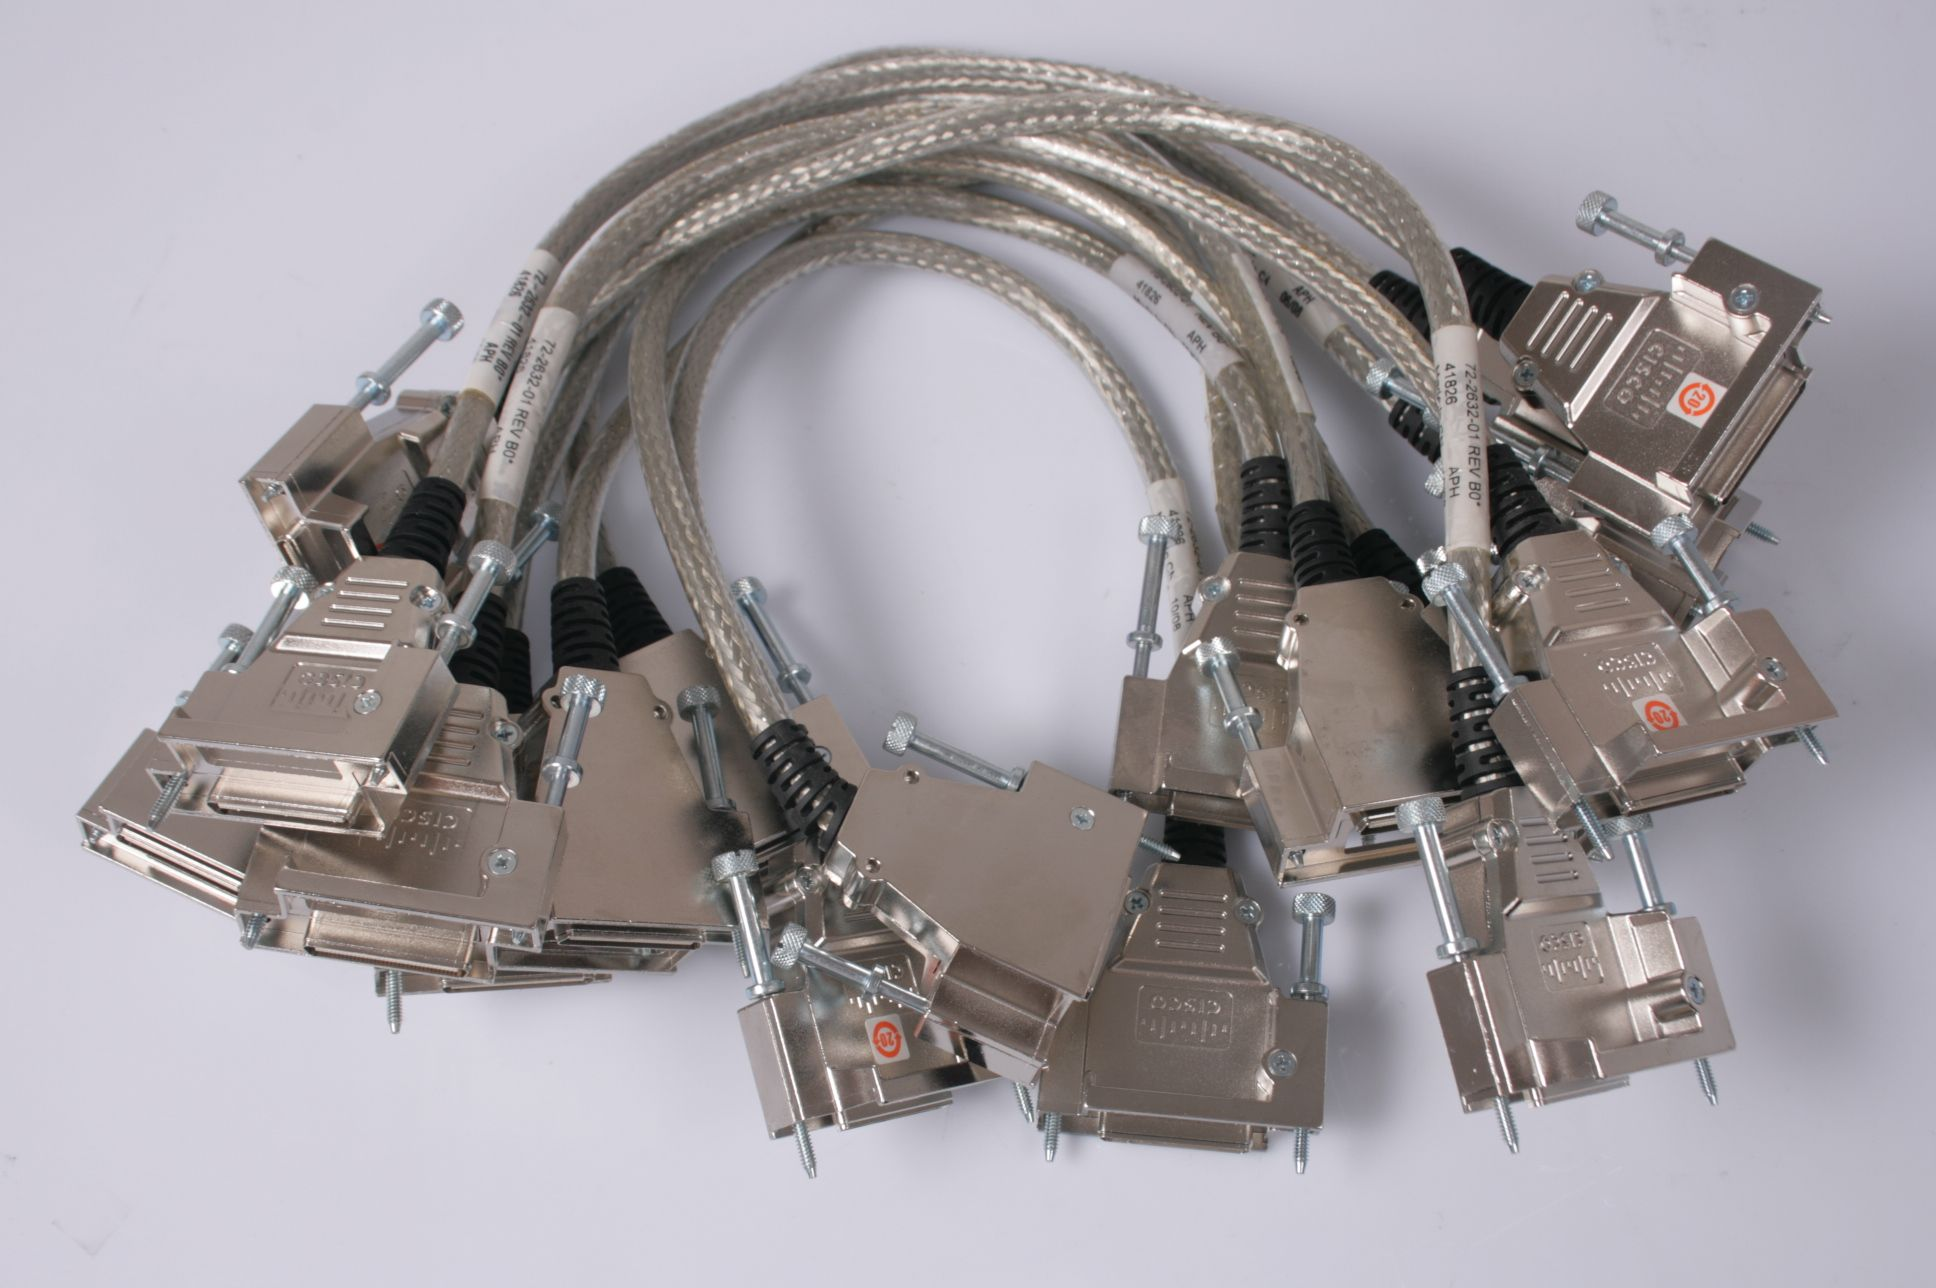 10 CISCO StackWise 50CM Stacking Cable CAB-STACK-50CM 72-2632-01